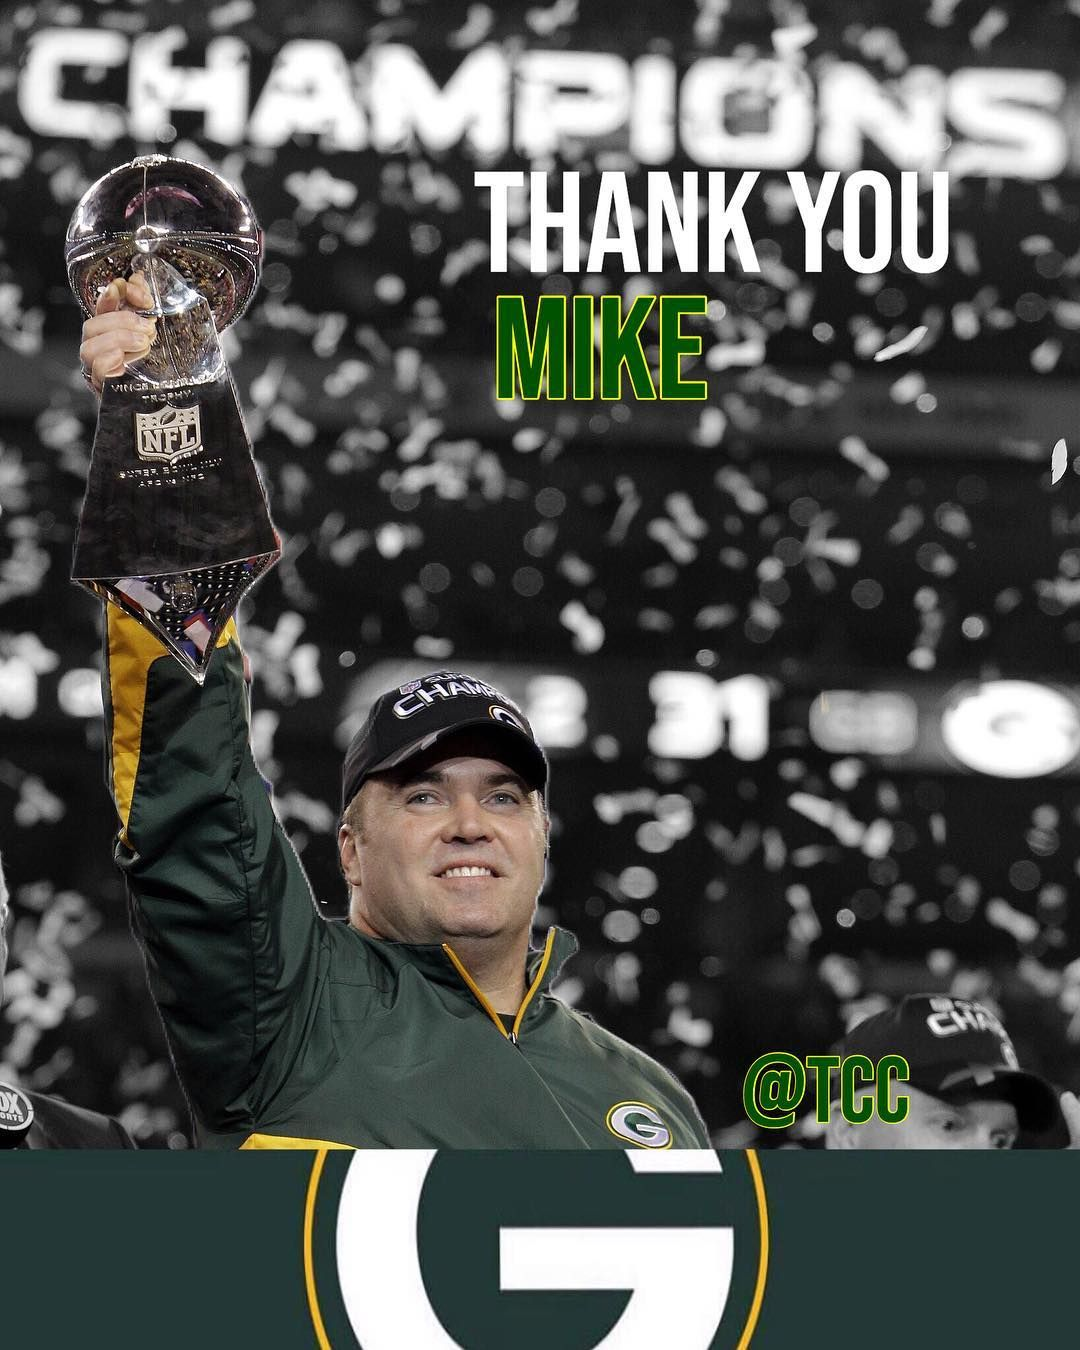 Yesterday After A Disappointing Loss To The Arizona Cardinals The Packers Came To The Decision To Fire H Nfl Green Bay Green Bay Packers Fans Green Bay Packers